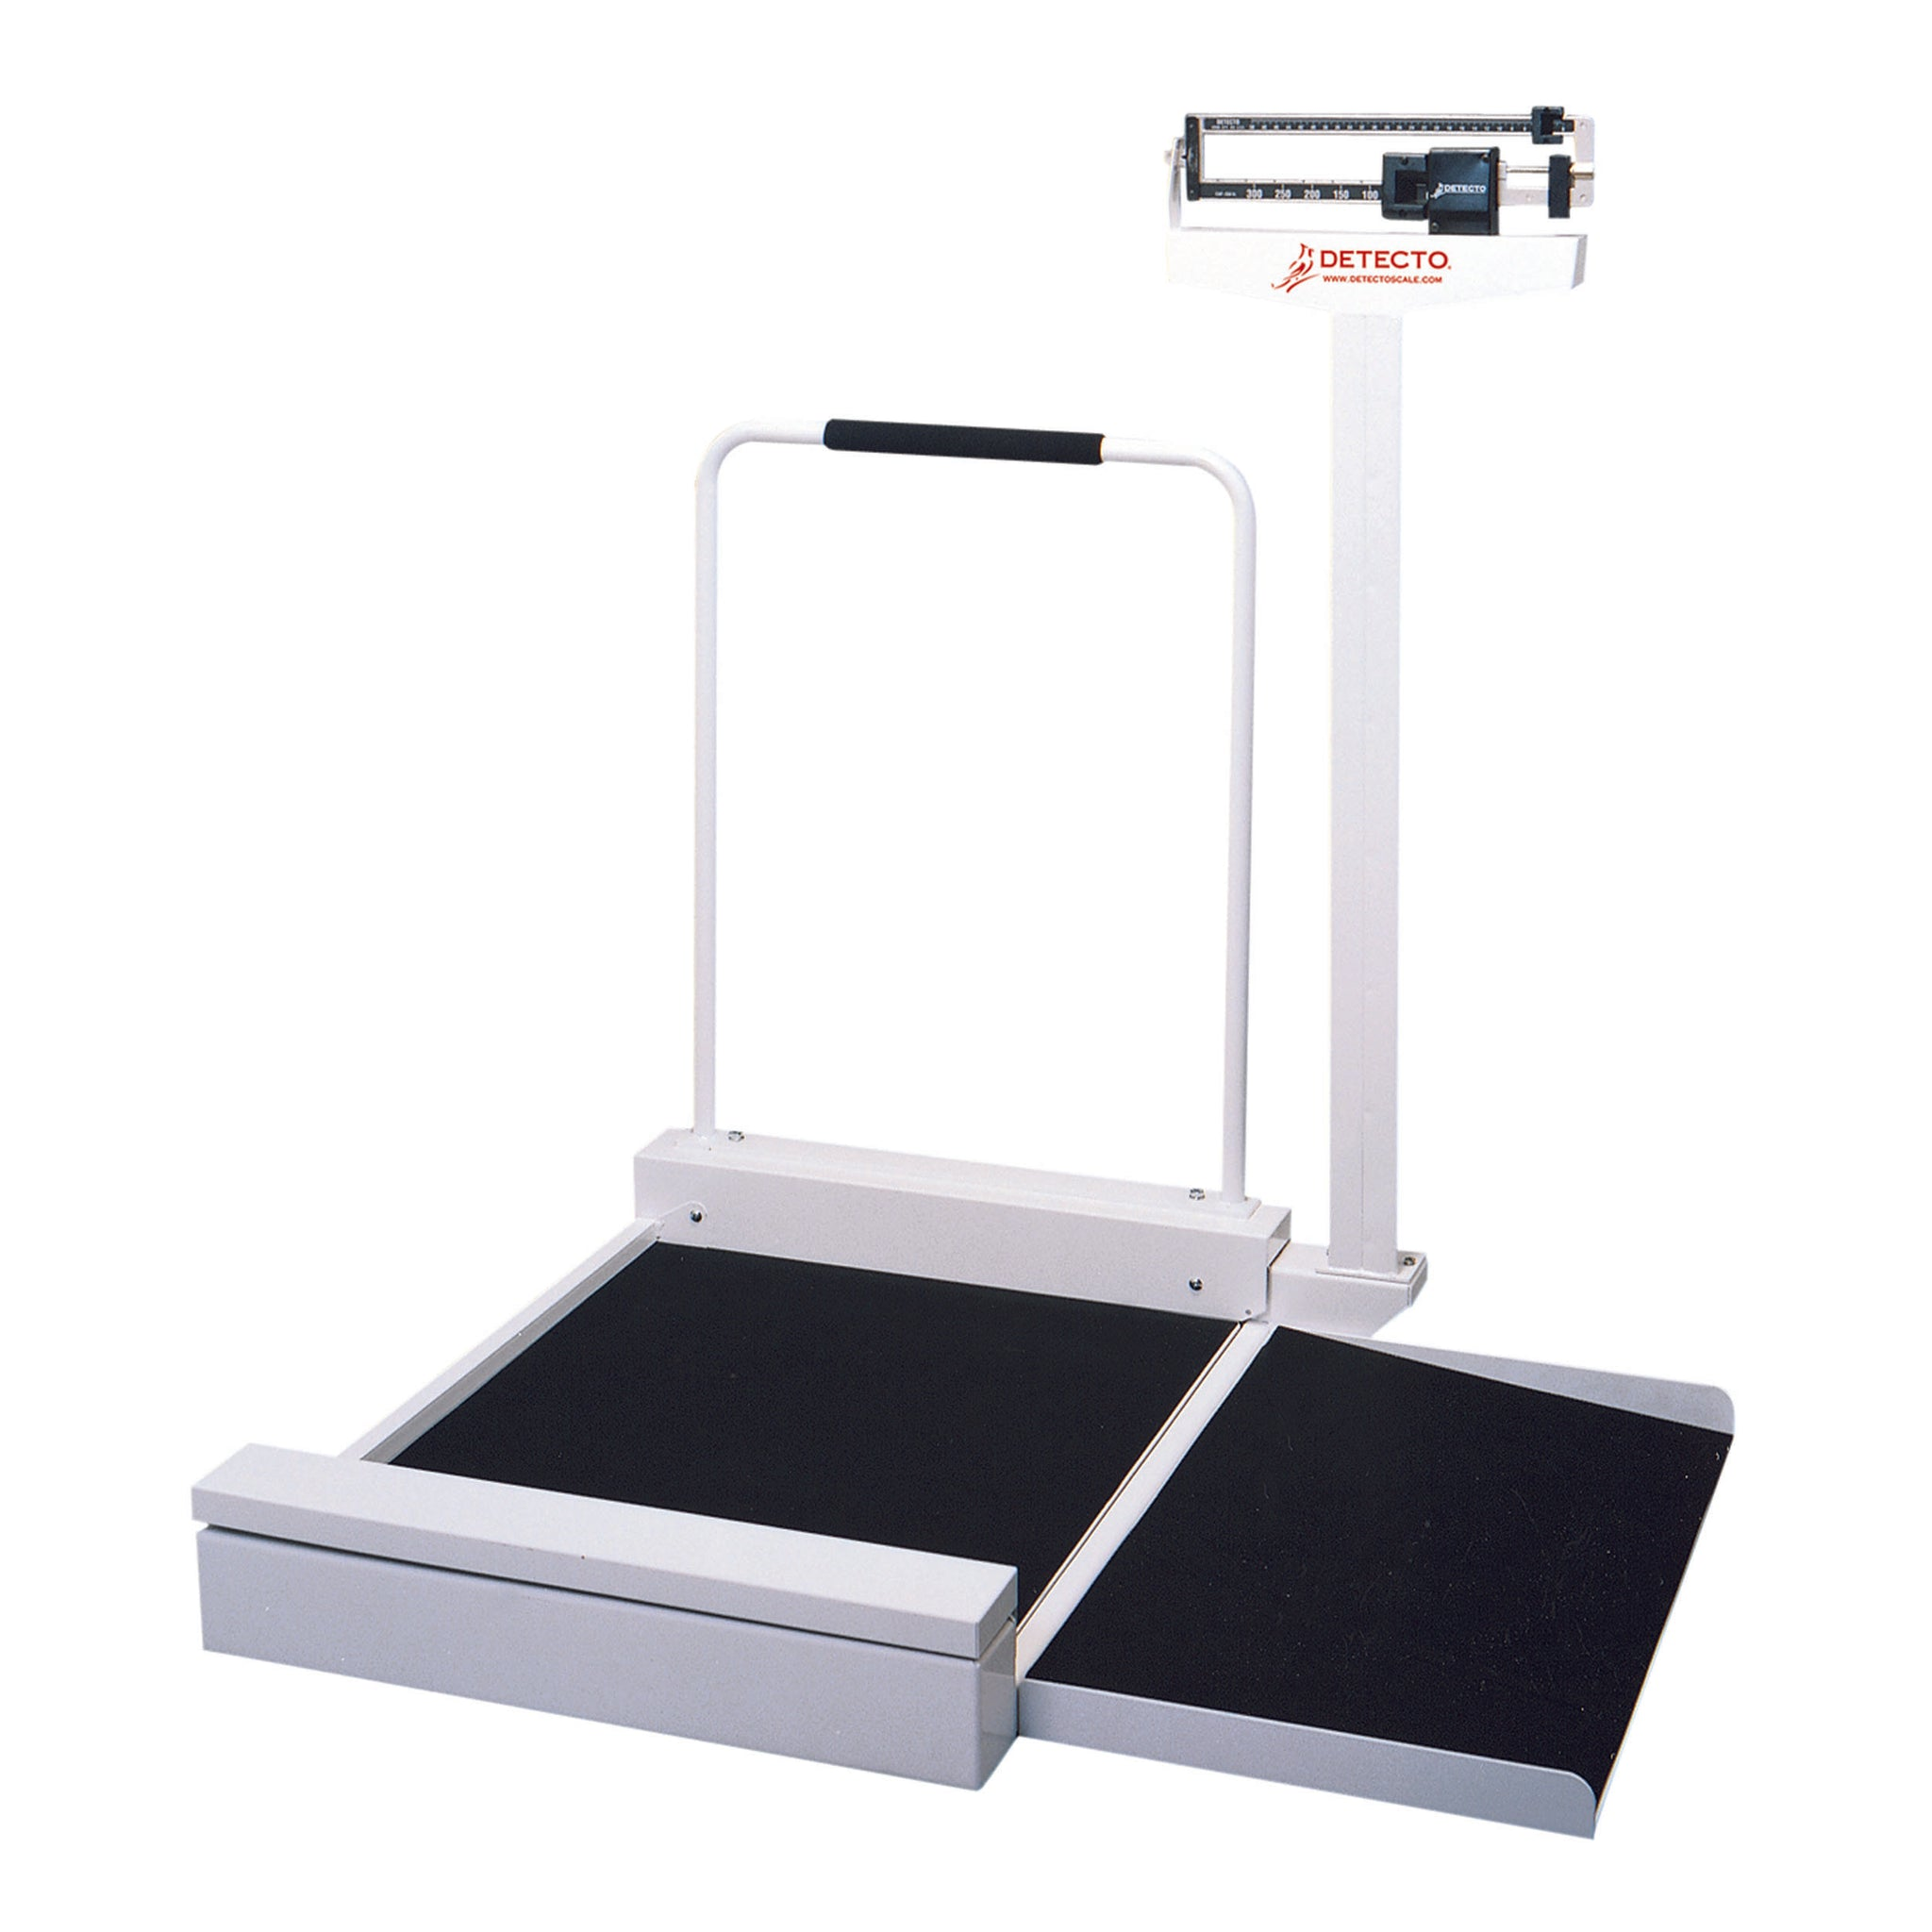 Detecto 495 Series Stationary Wheelchair Scale